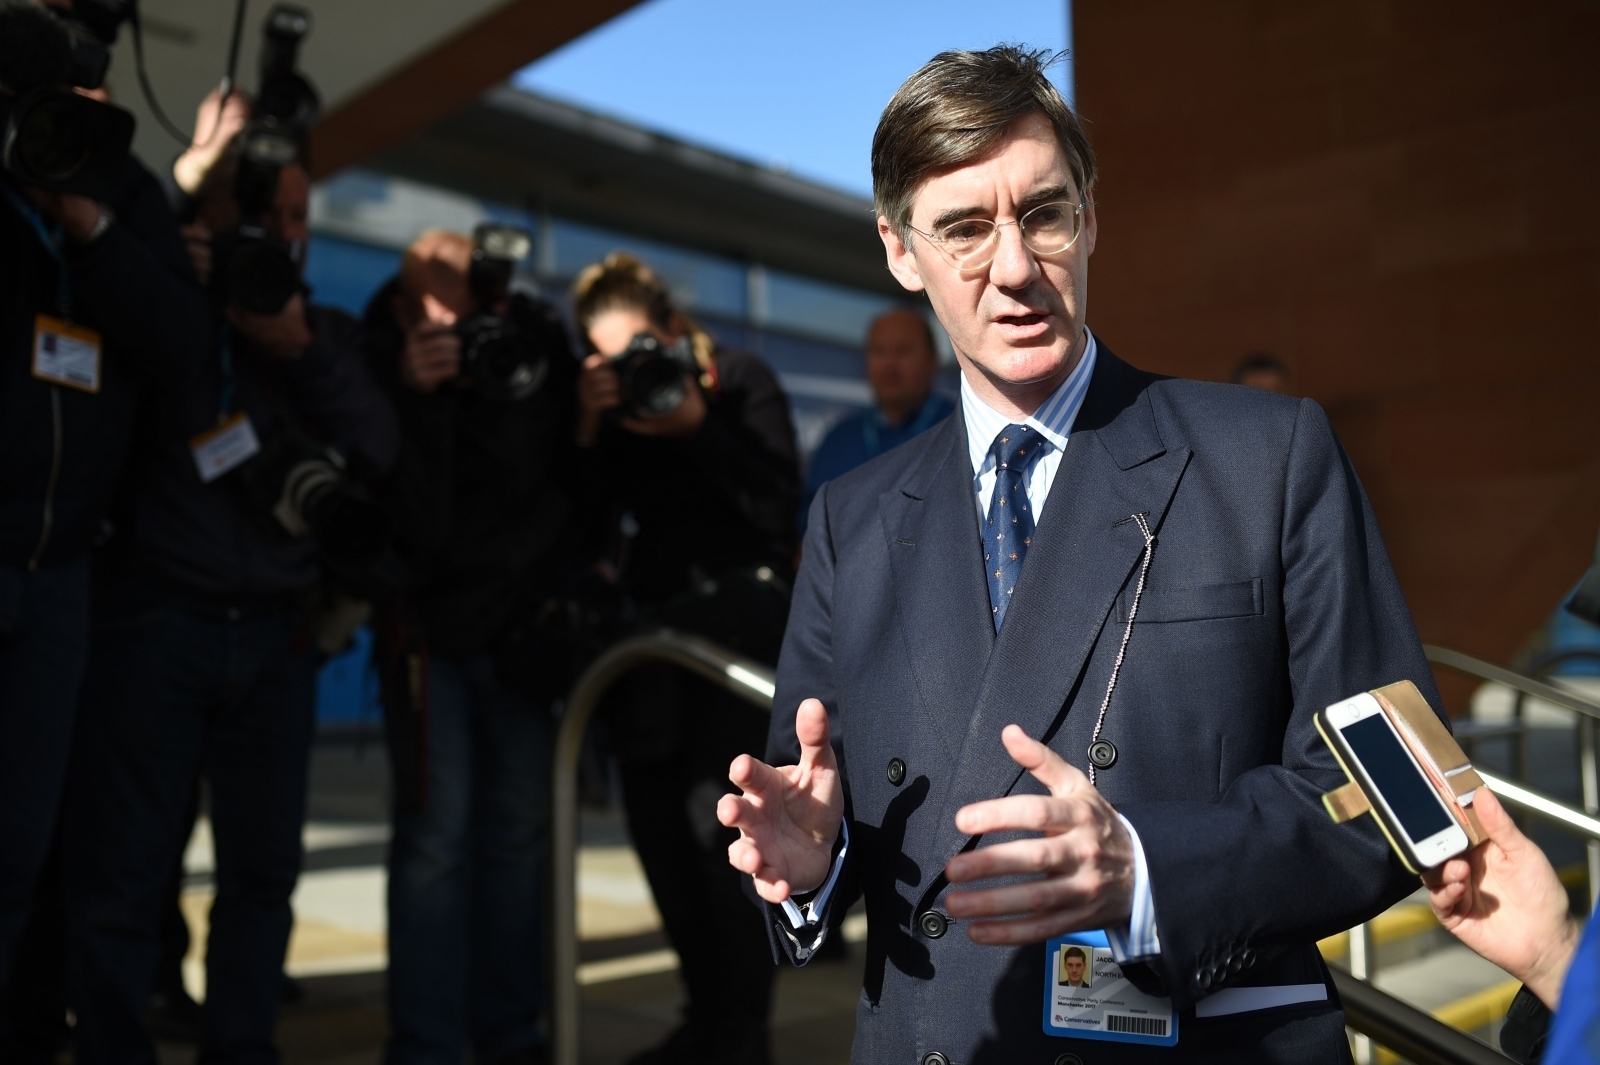 Jacob Rees-Mogg Conservative Party conference